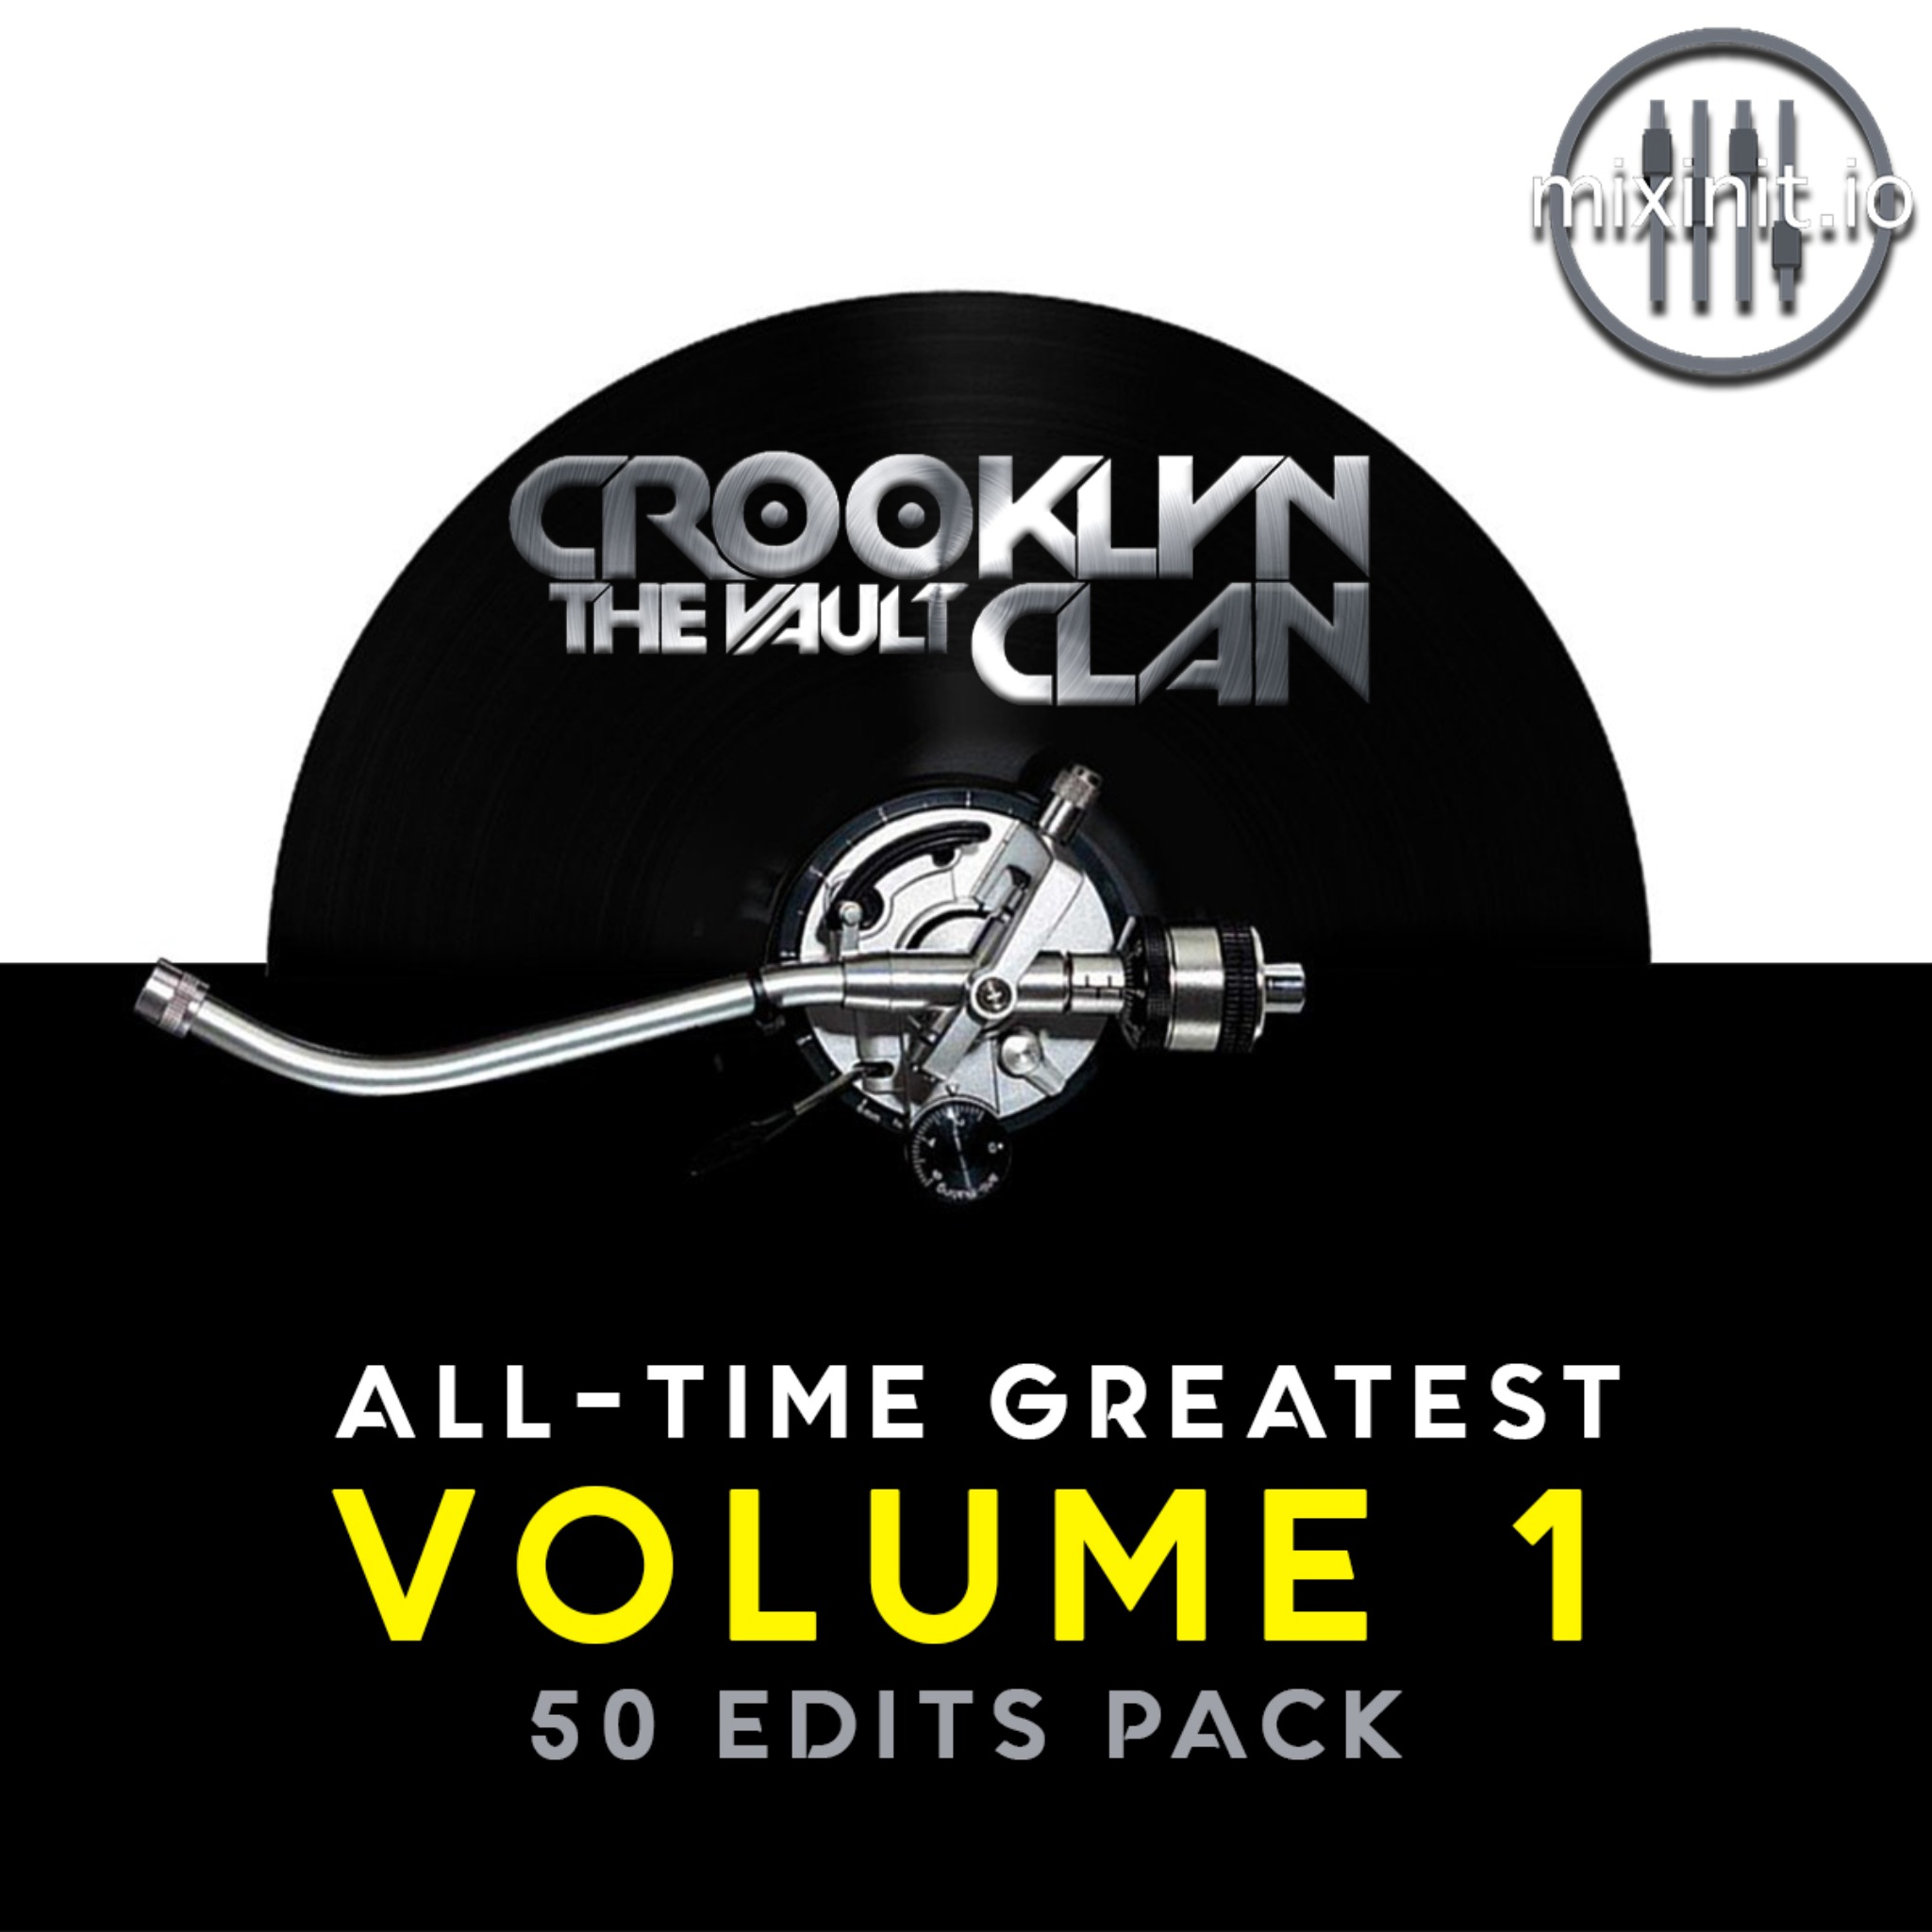 Best Of The Crooklyn Clan Vault Vol. 1 (Various Editors)